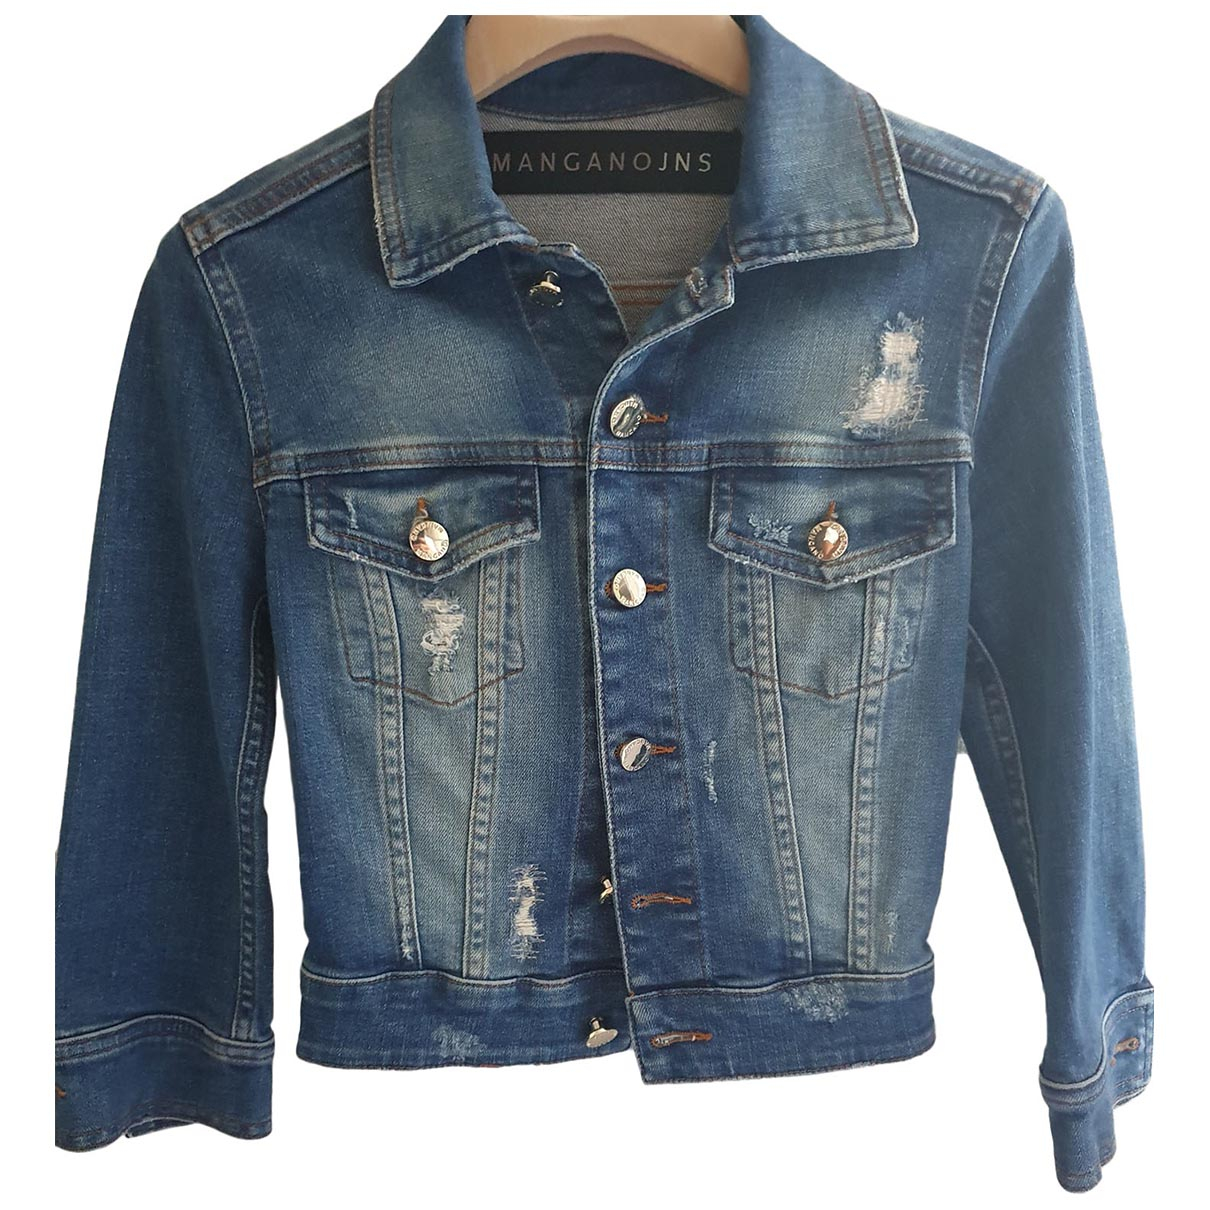 Mangano \N Blue Denim - Jeans jacket for Women 38 IT